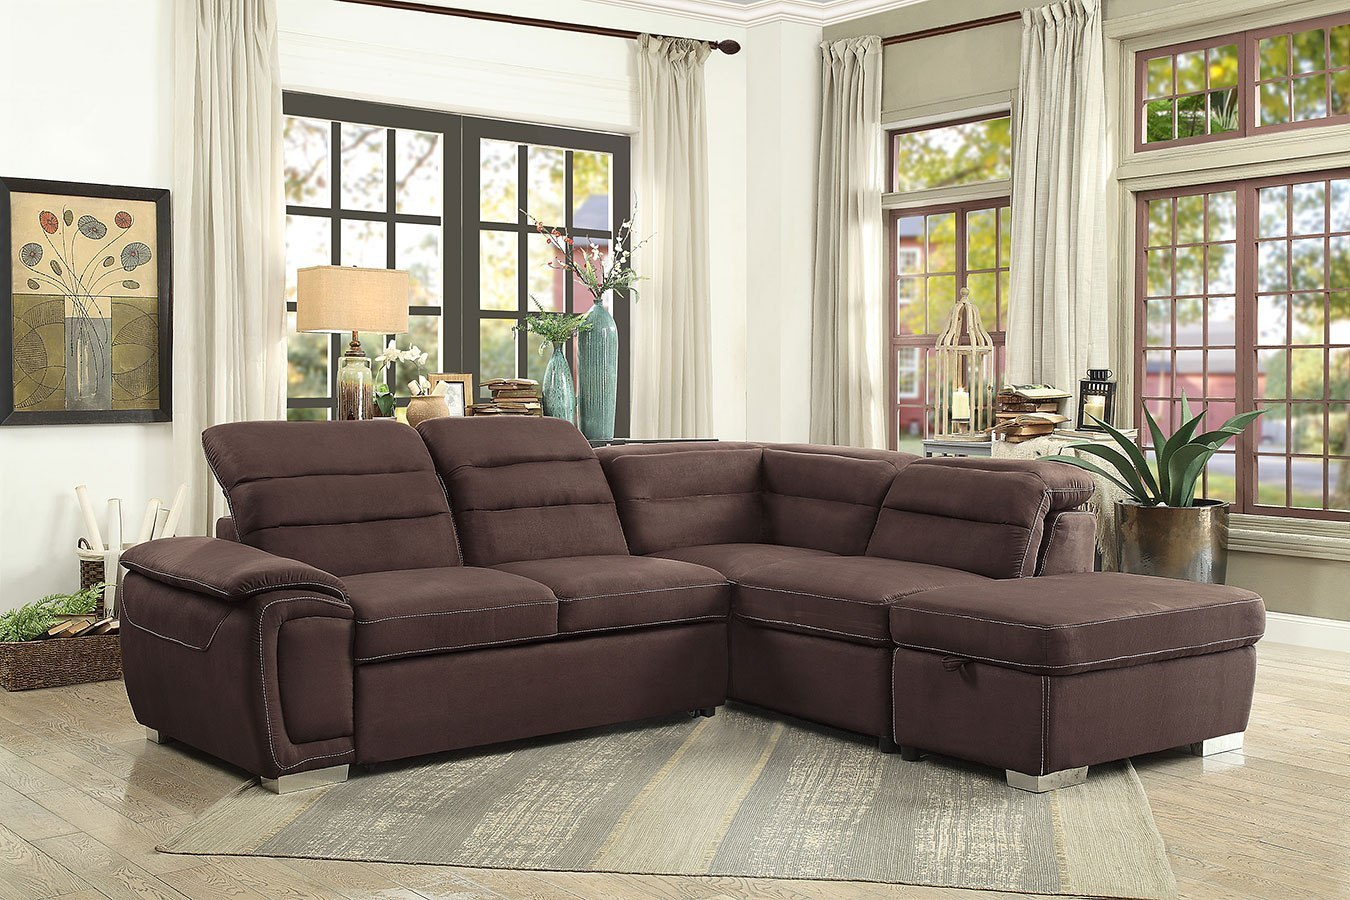 Platina Sectional W Pull Out Bed And Storage Ottoman By Homelegance